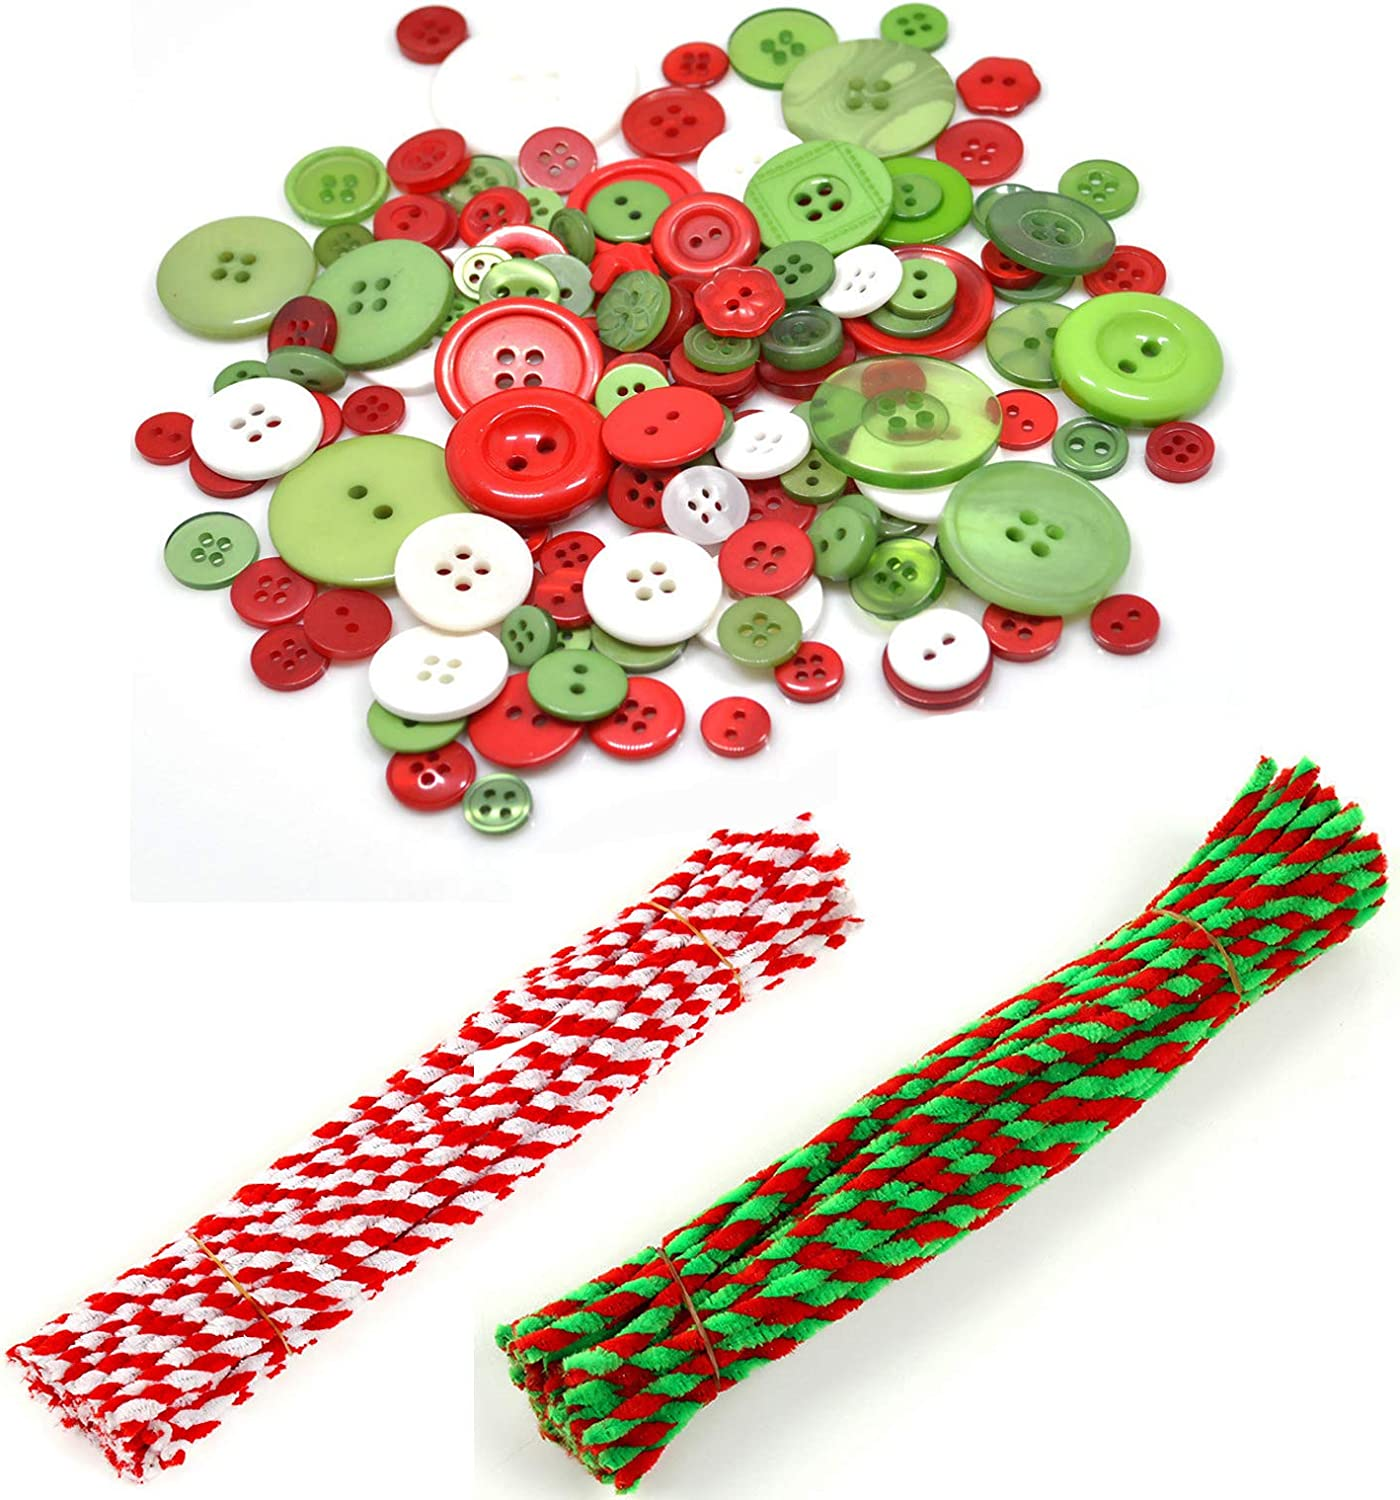 Christmas Ornament Craft Kit 100 Pieces Chenille Stems Pipe Cleaners About 200 Pieces Colorful Christmas Buttons Xmas Resin Buttons